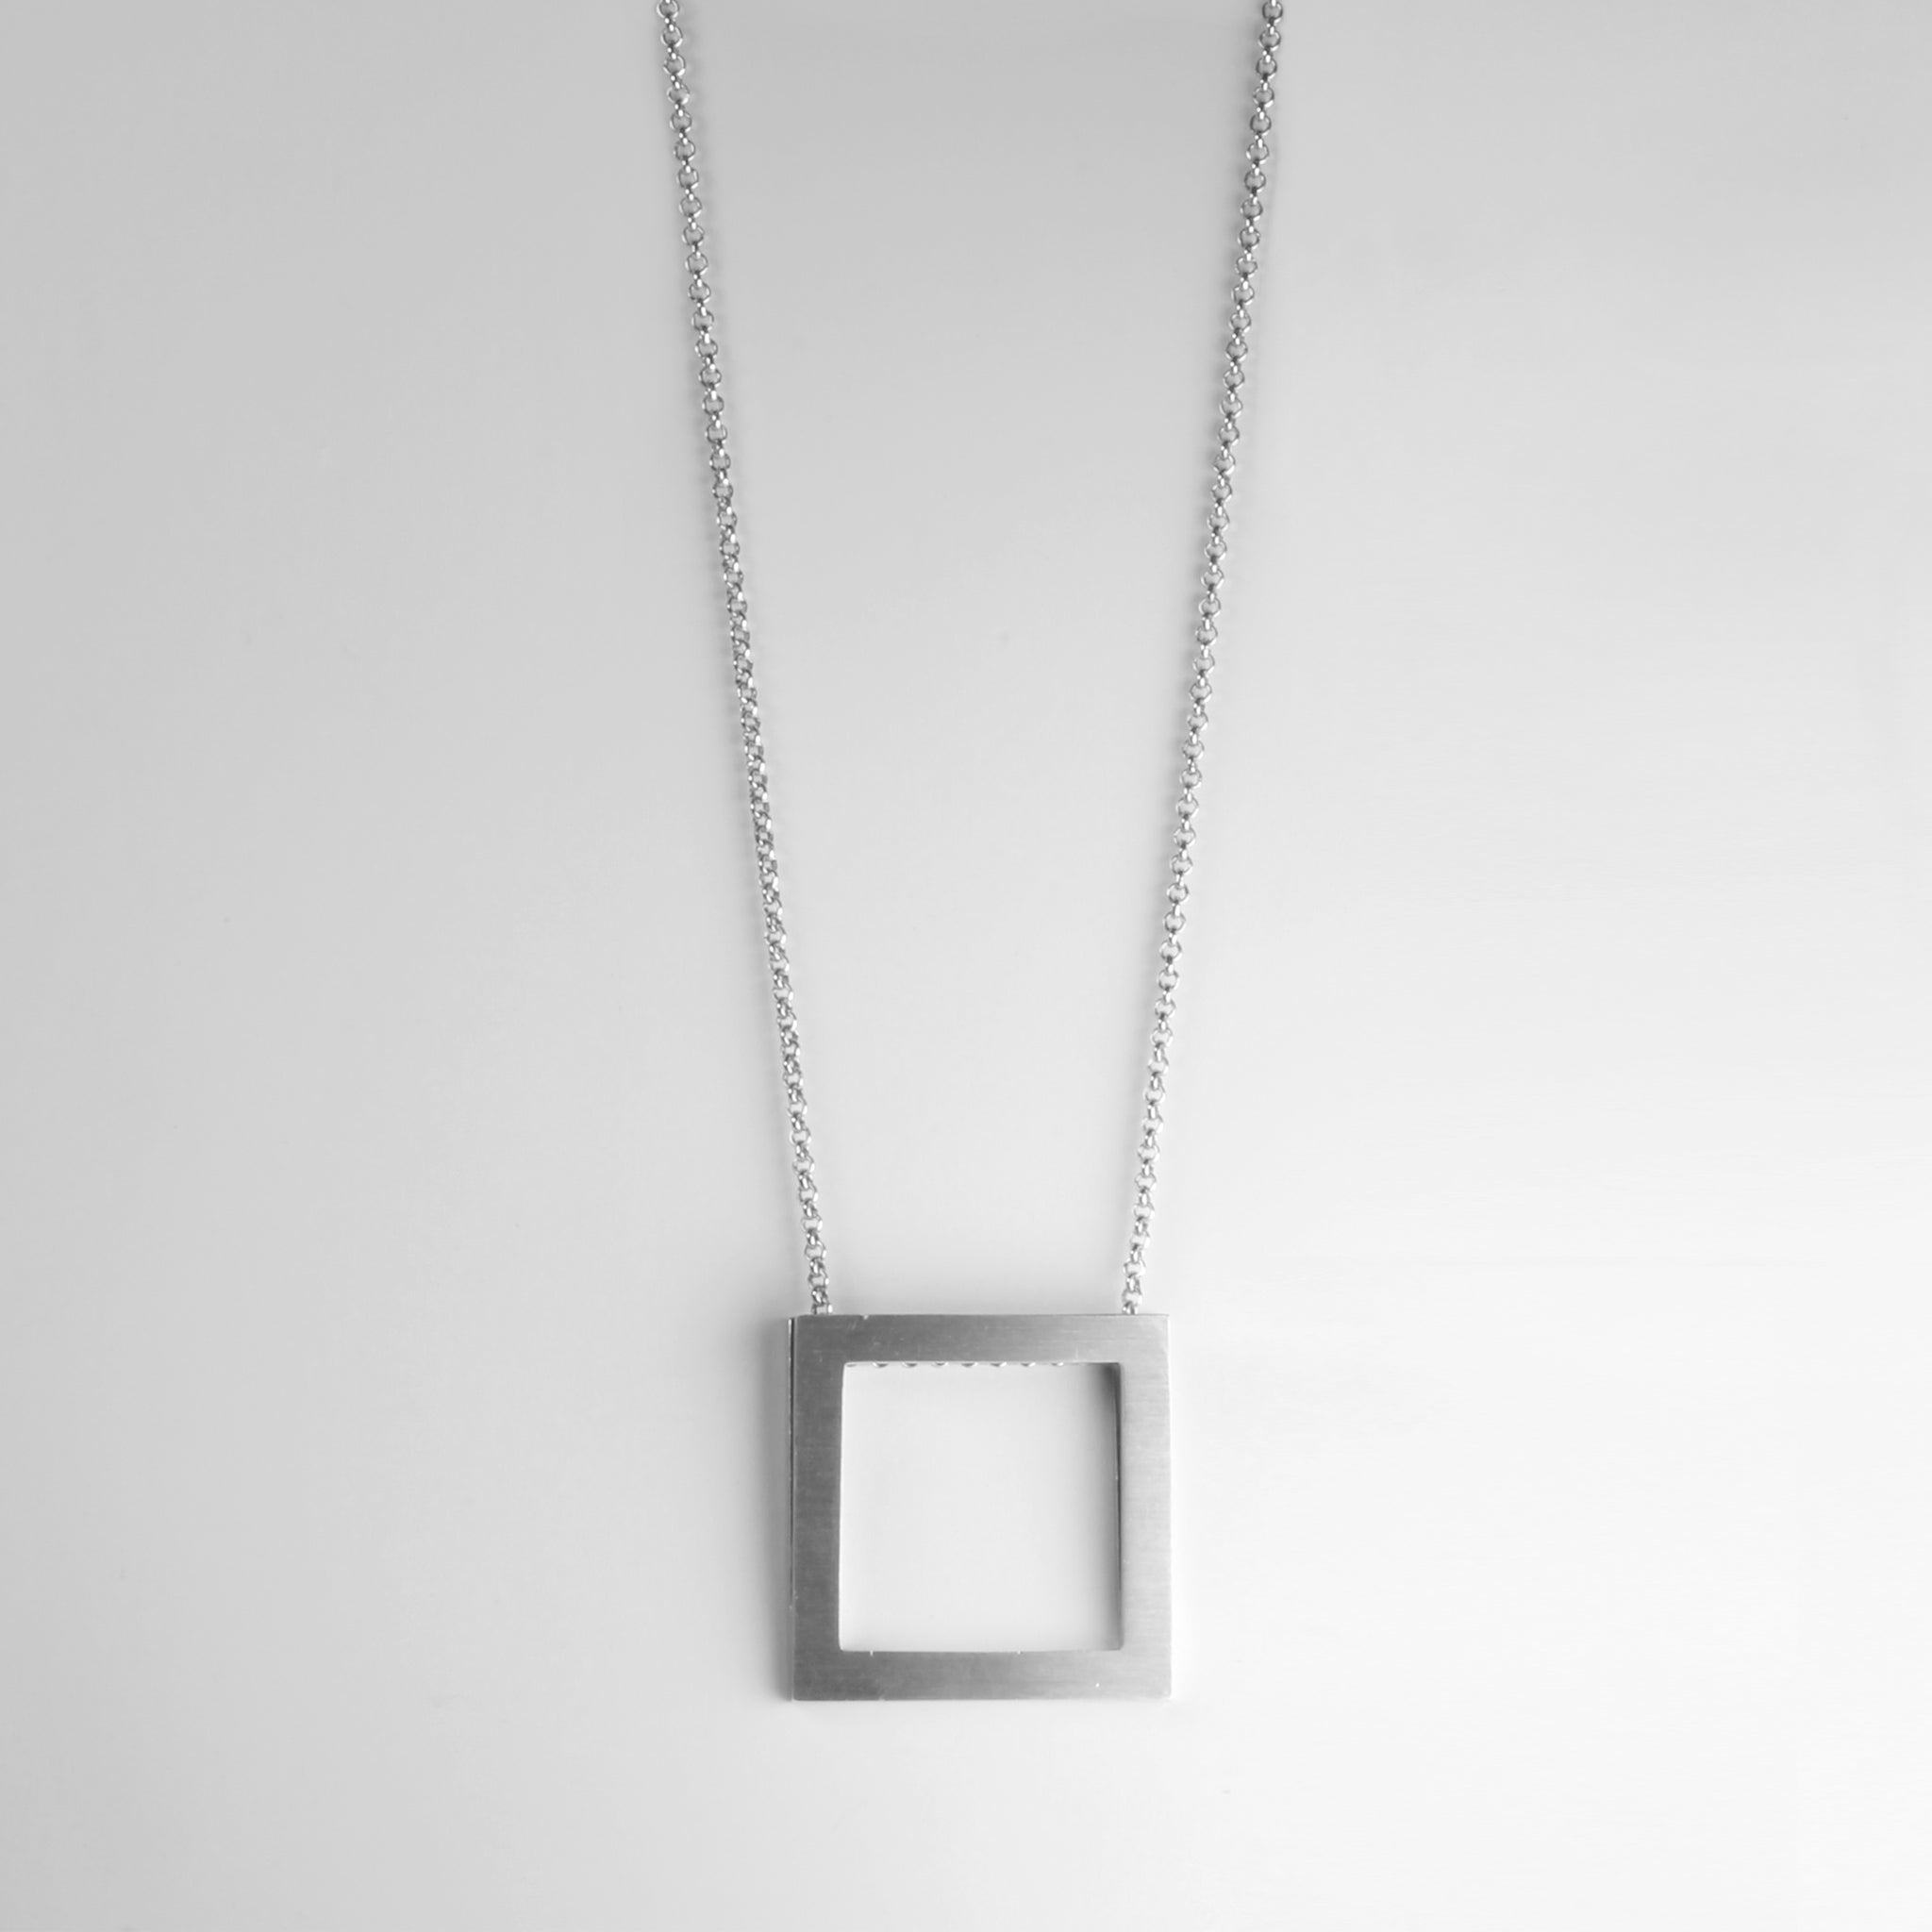 GEOMETRIC square long necklace